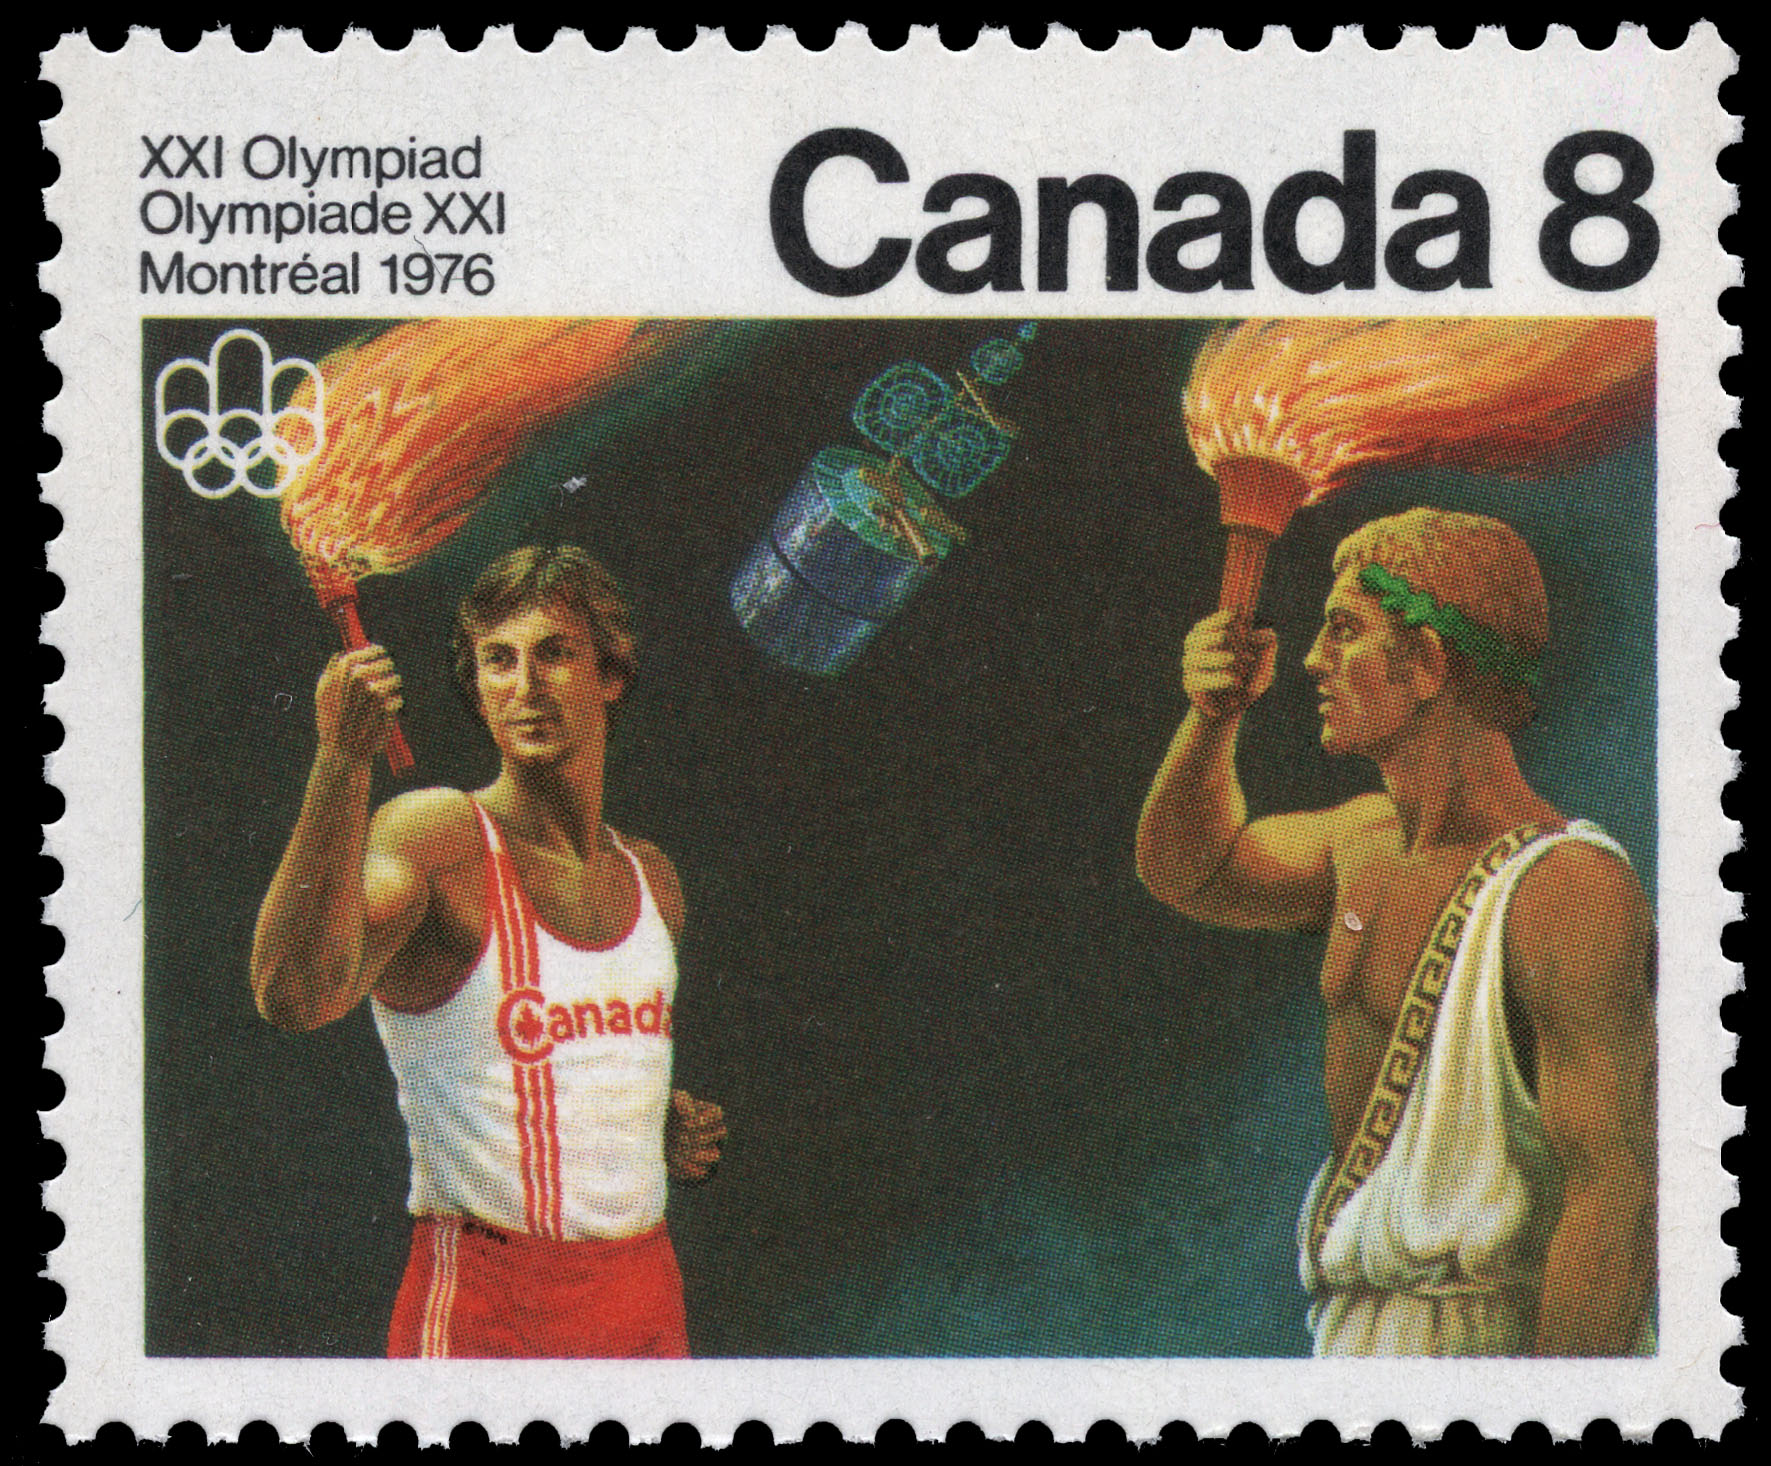 Flame Ceremony Canada Postage Stamp